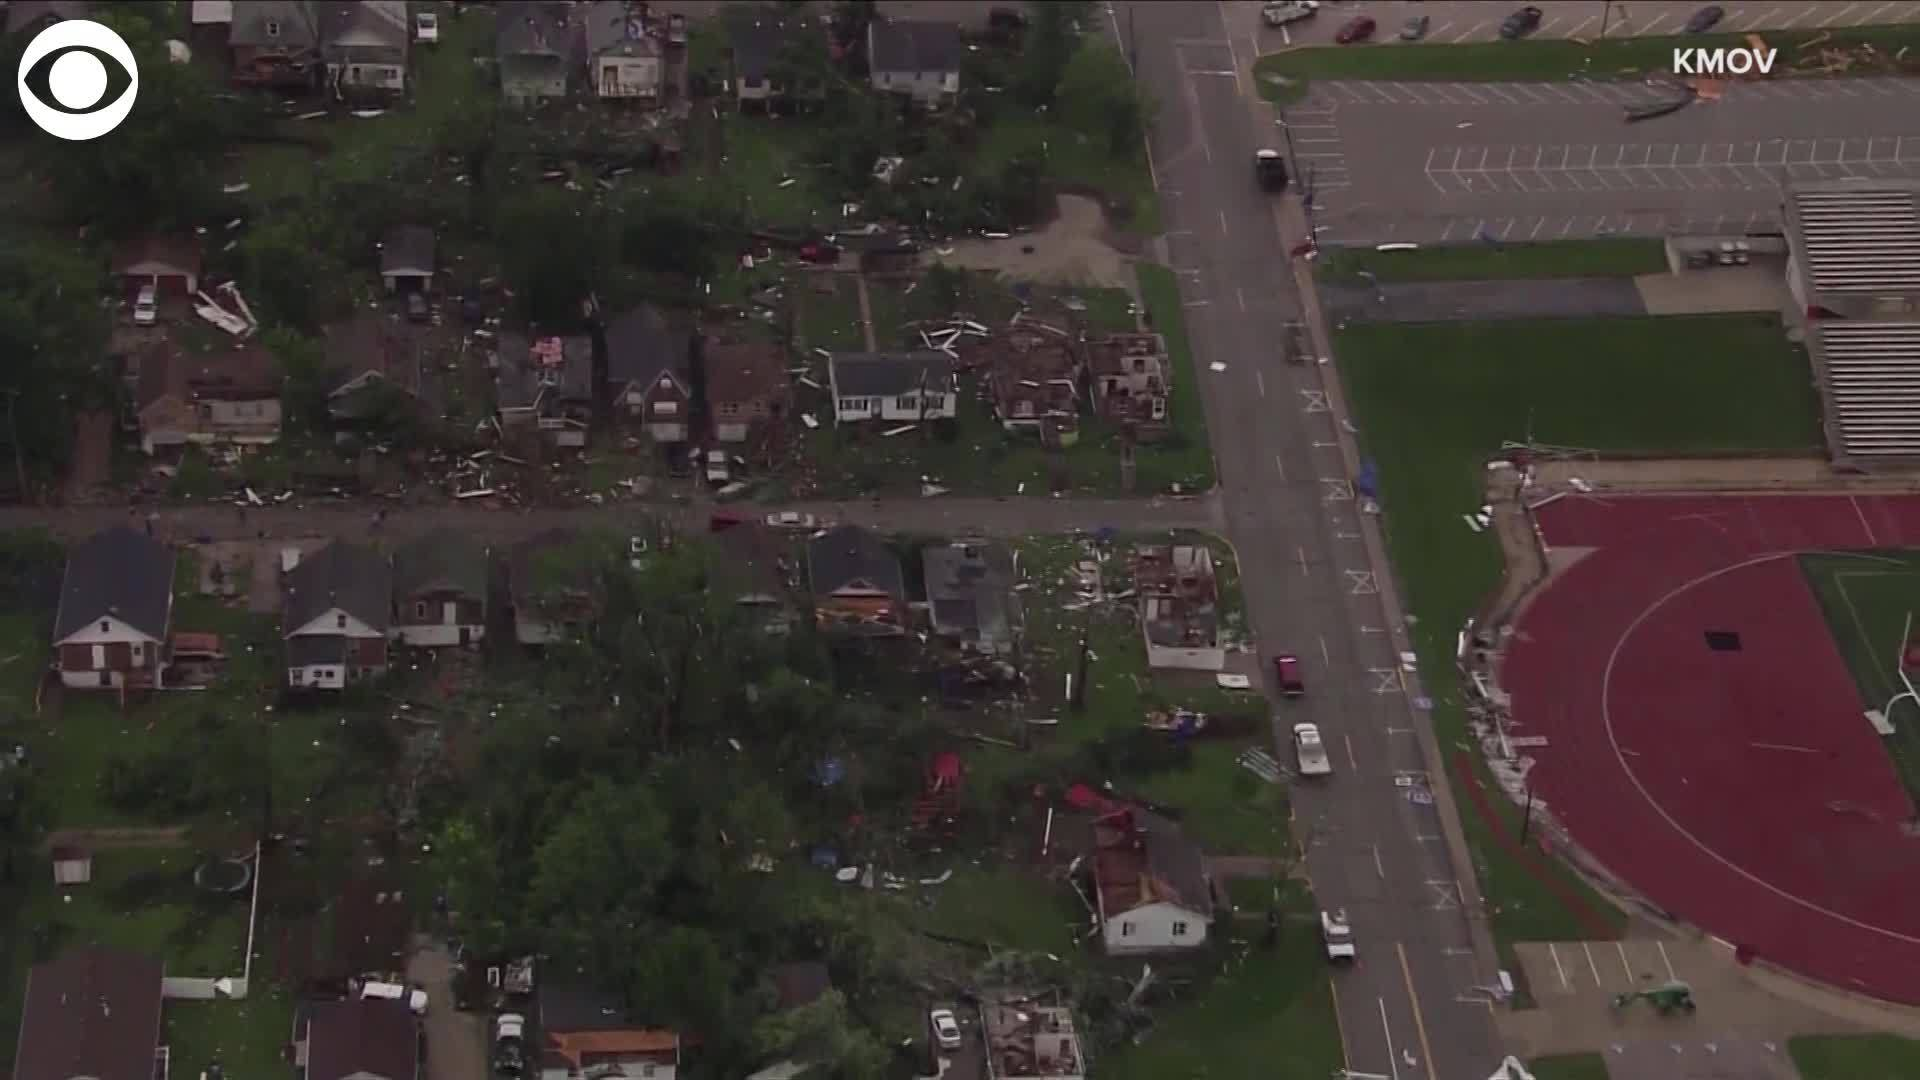 CBS Jefferson City MO Damage